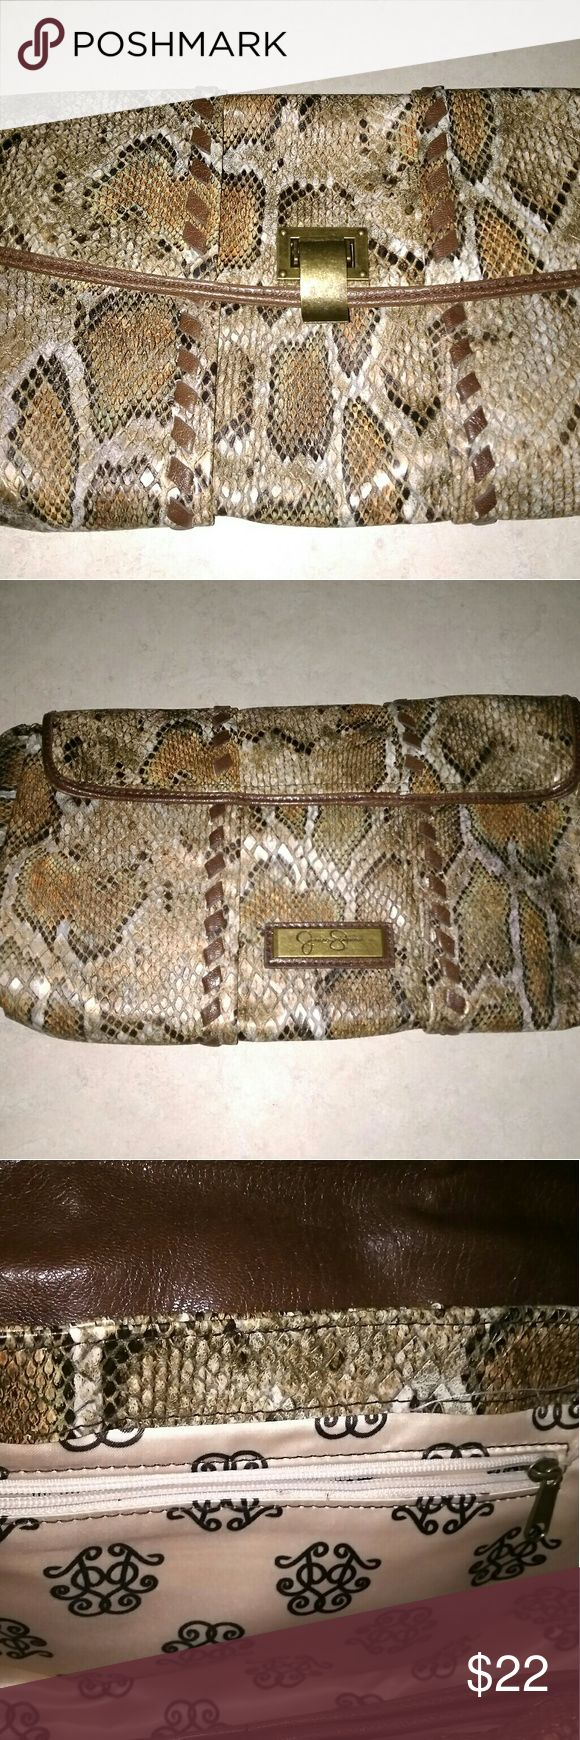 Jessica Simpson Animal Print Clutch Purse No rips or stains Smoke free environment Flap with hook Closure 12 inches wide x 6.5 inches high Jessica Simpson Bags Clutches & Wristlets